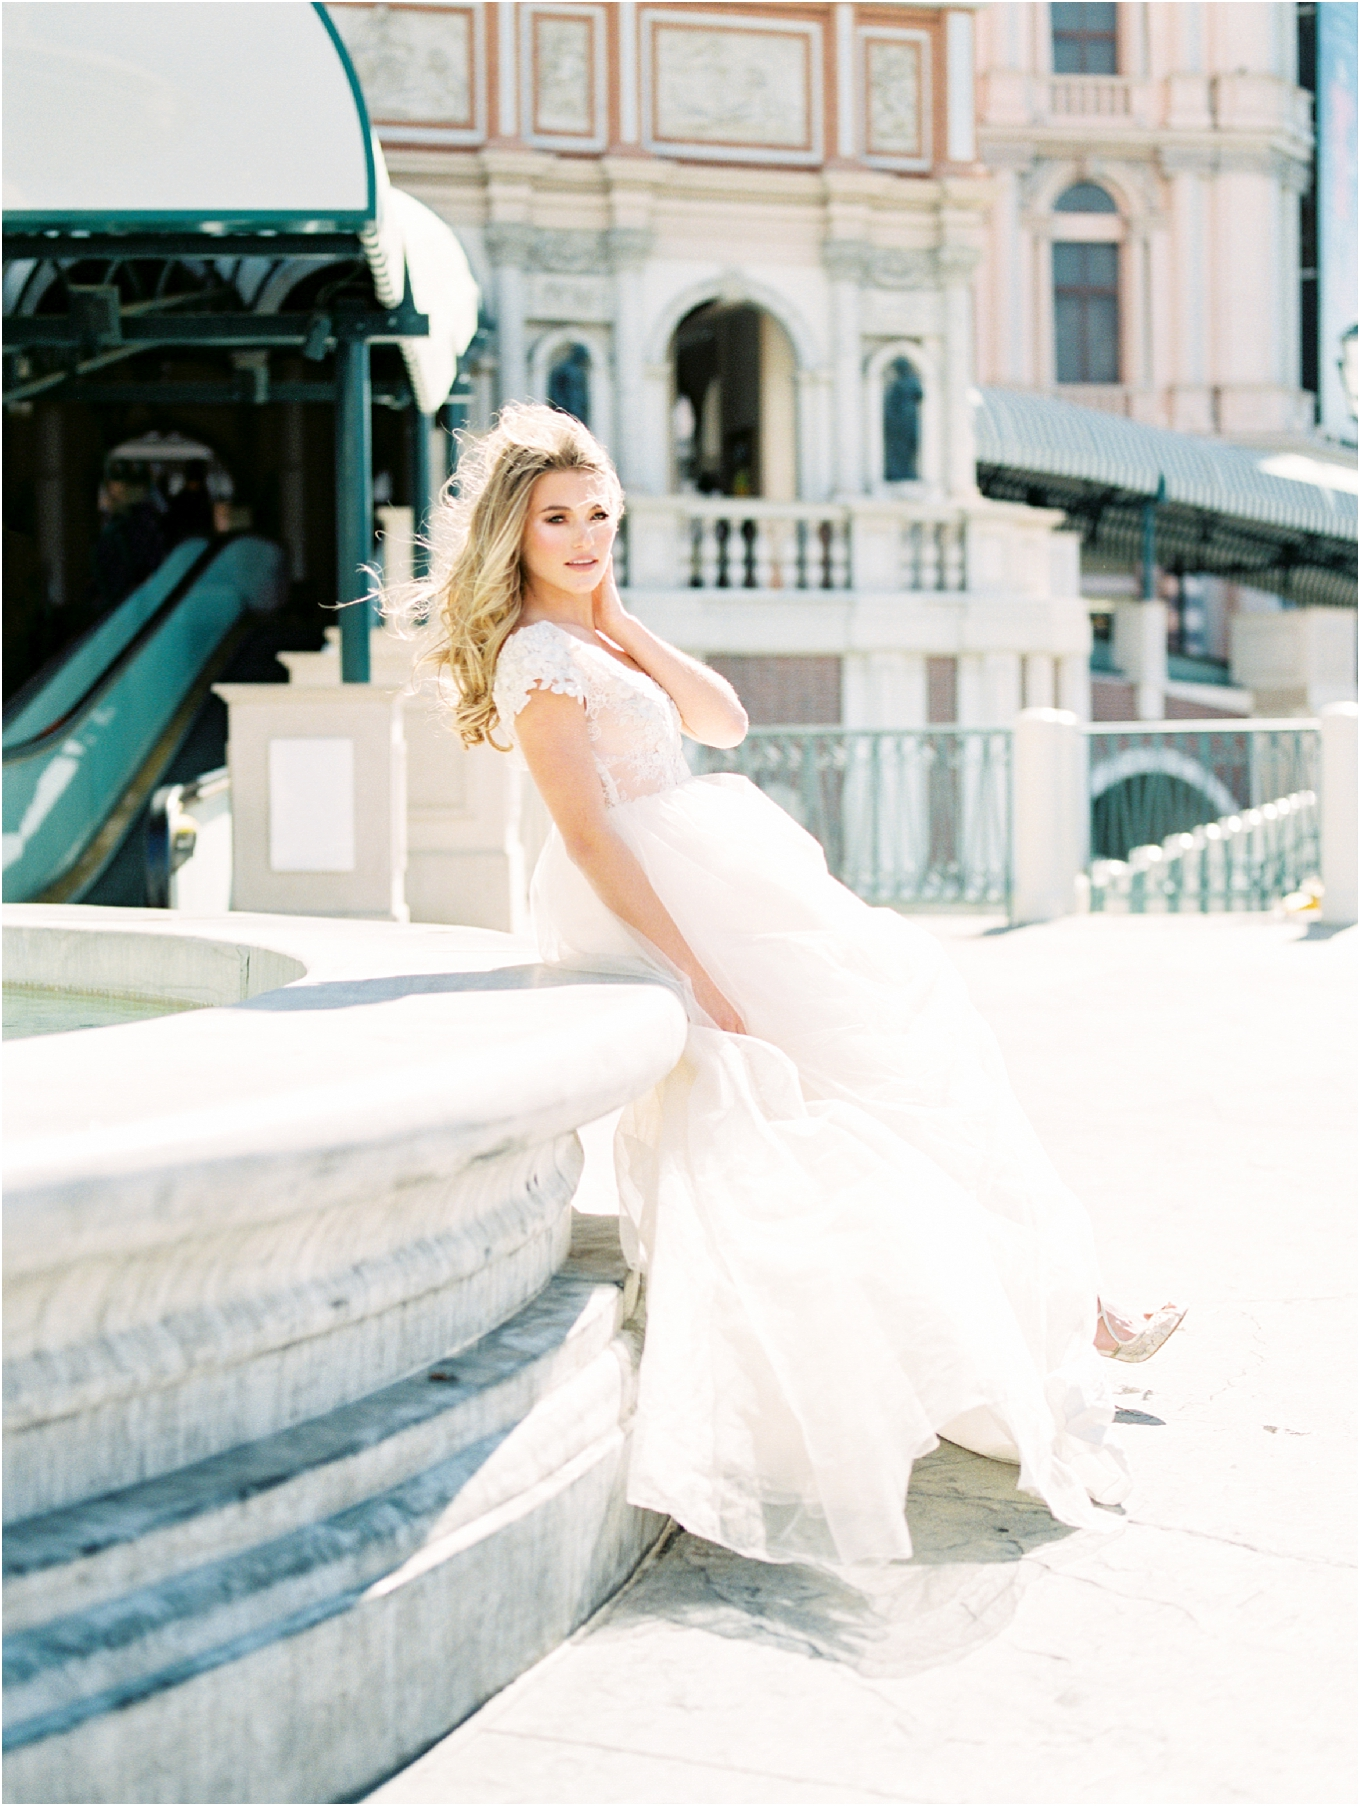 Lisa Silva Photography- Ponte Vedra Beach, St. Augustine and Jacksonville, Florida Fine Art Film Wedding and Boudoir Photography- Fine Art Film Bridal Editorial at the Venitian, Las Vegas_0025.jpg